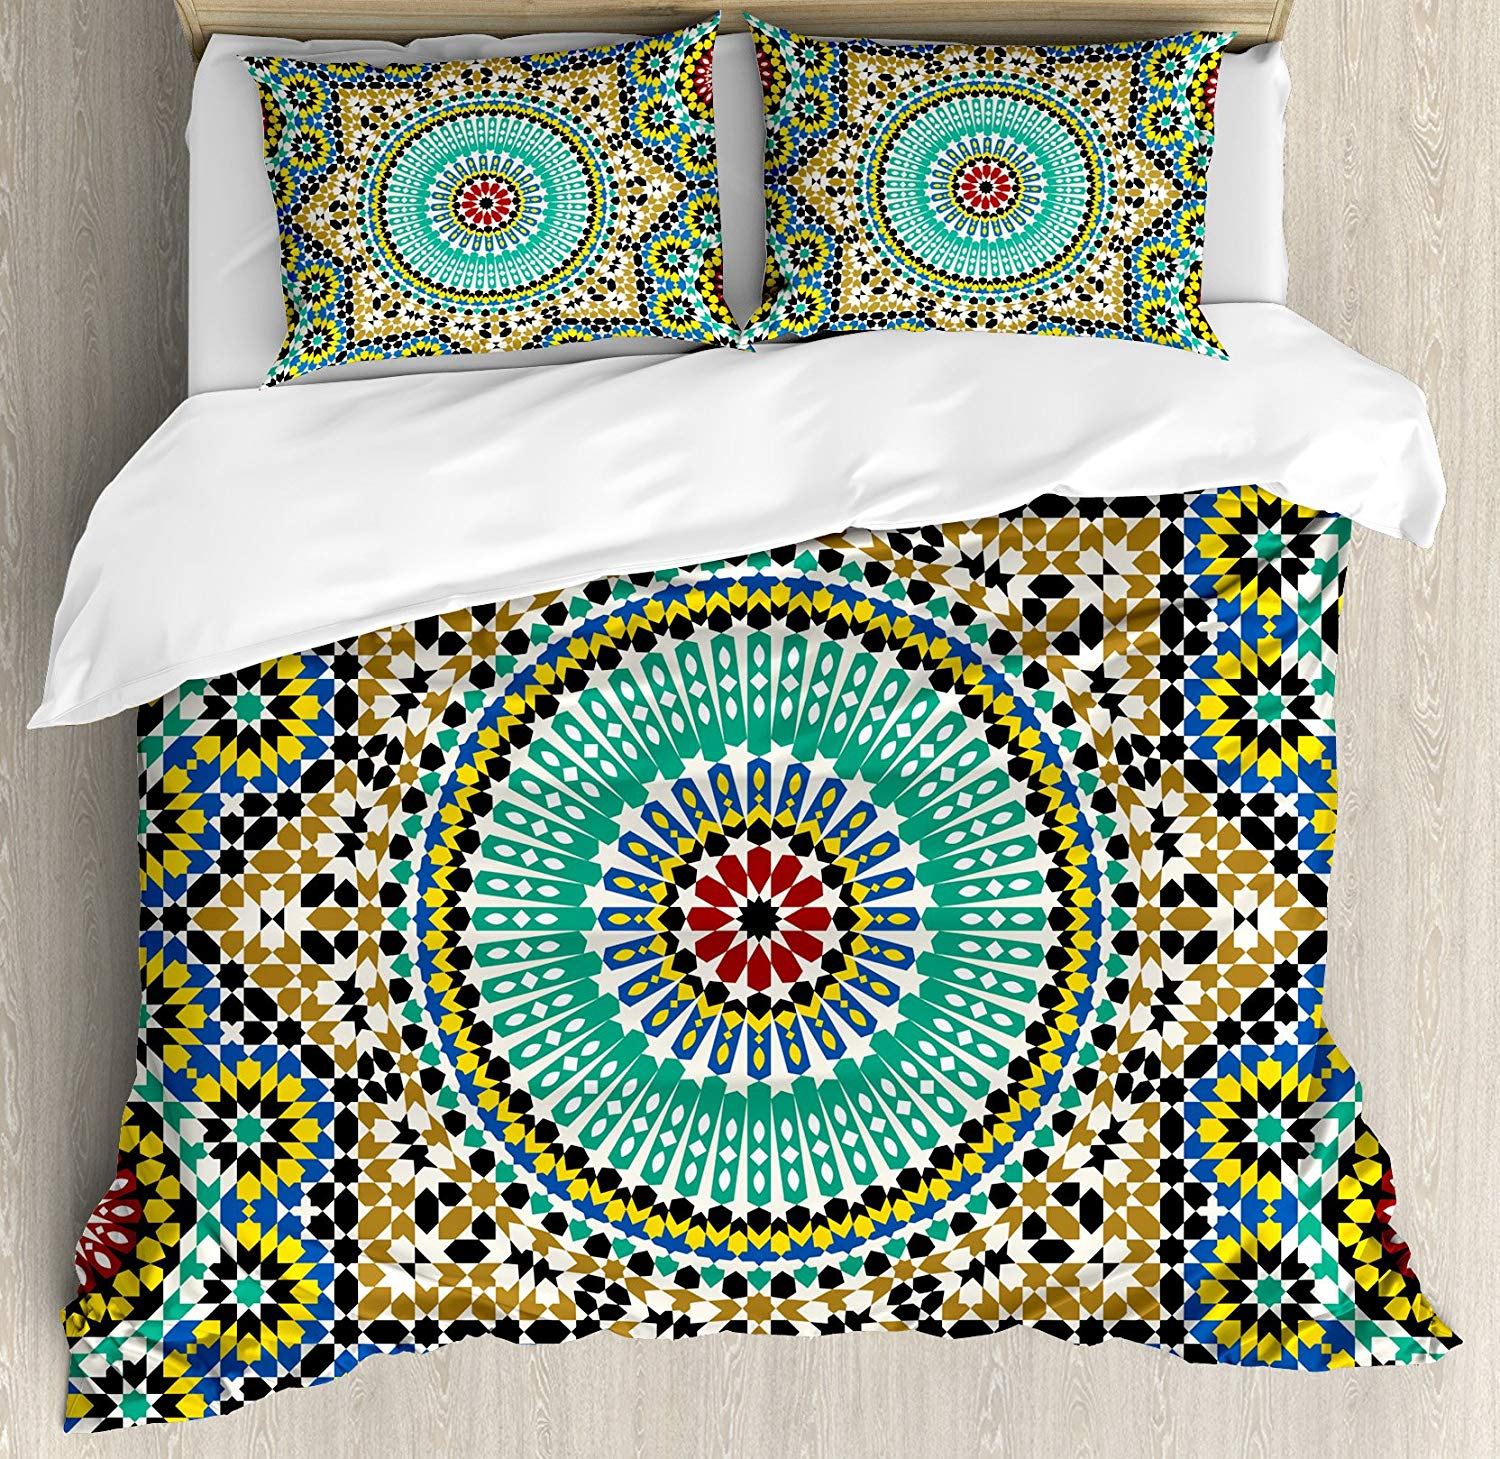 Moroccan Decor Duvet Cover Set Queen Size Architectural Glaze Decorative Wall Tile Ceramic Historical Traveling Destinations